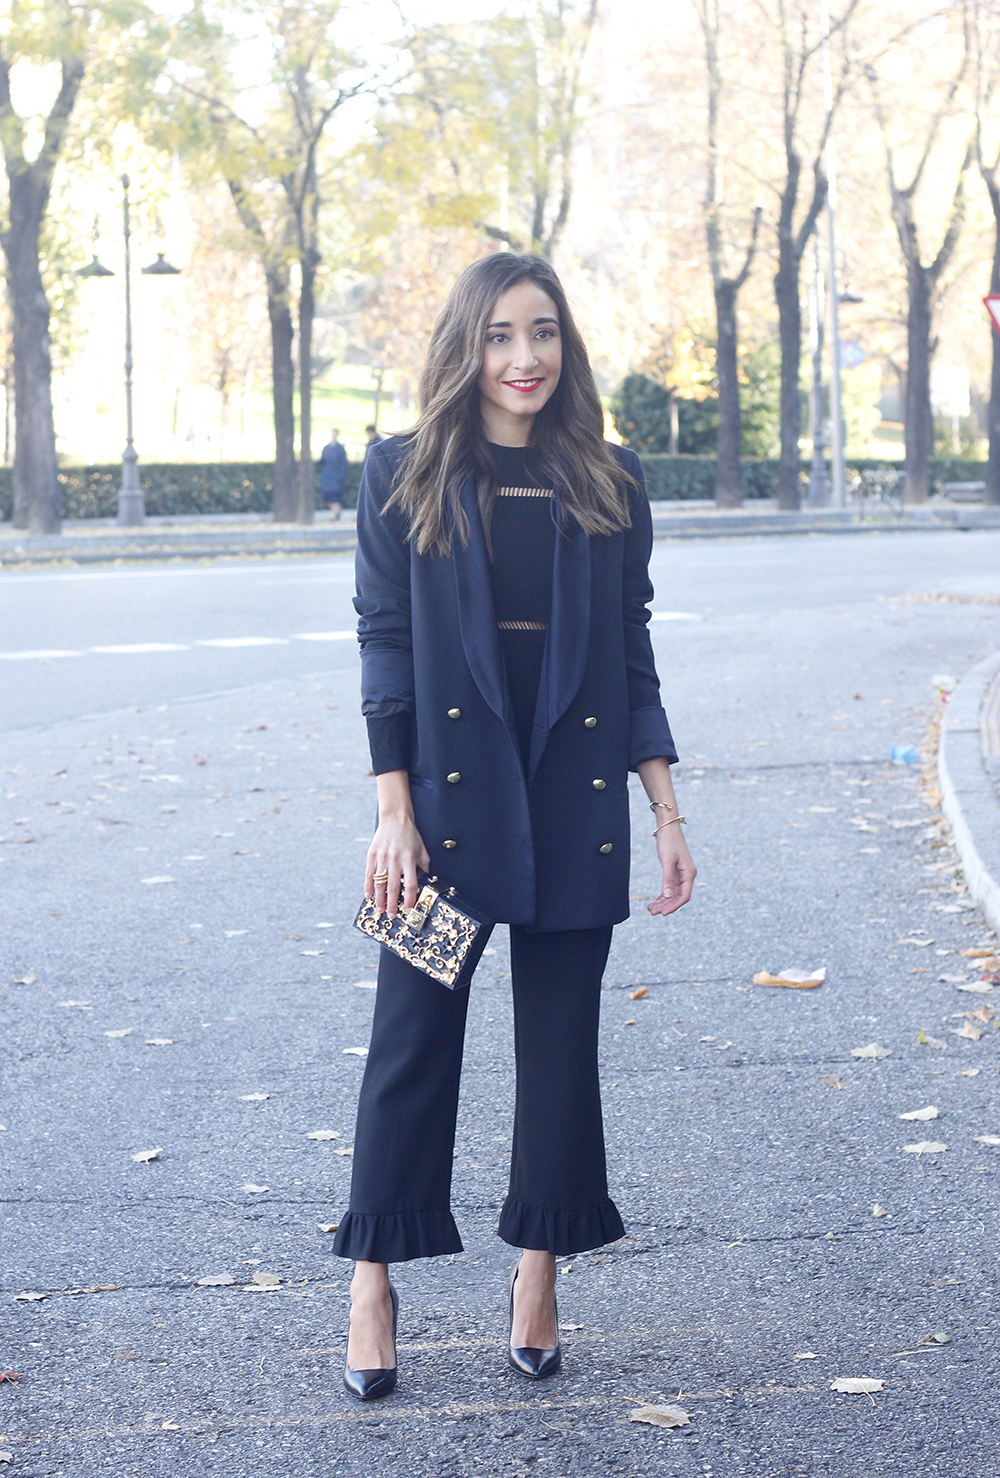 Black trousers with a ruffle on the bottom uterqüe bag accessories black heels blazer outfit style fashion01